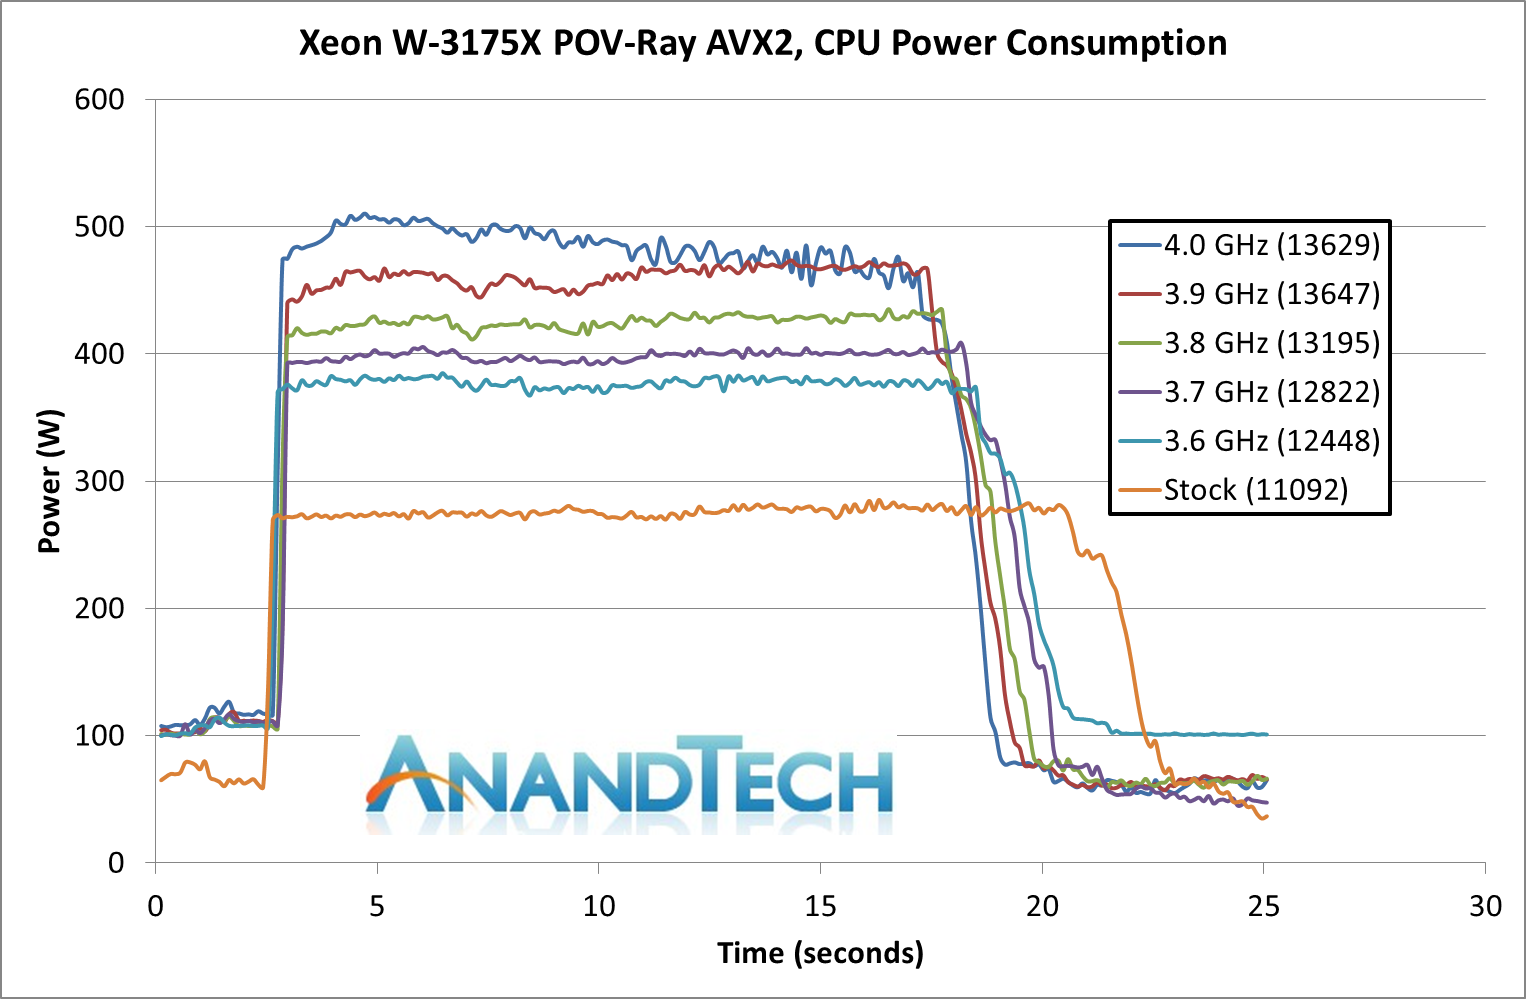 W-3175X Power Consumption and Overclocking - The Intel Xeon